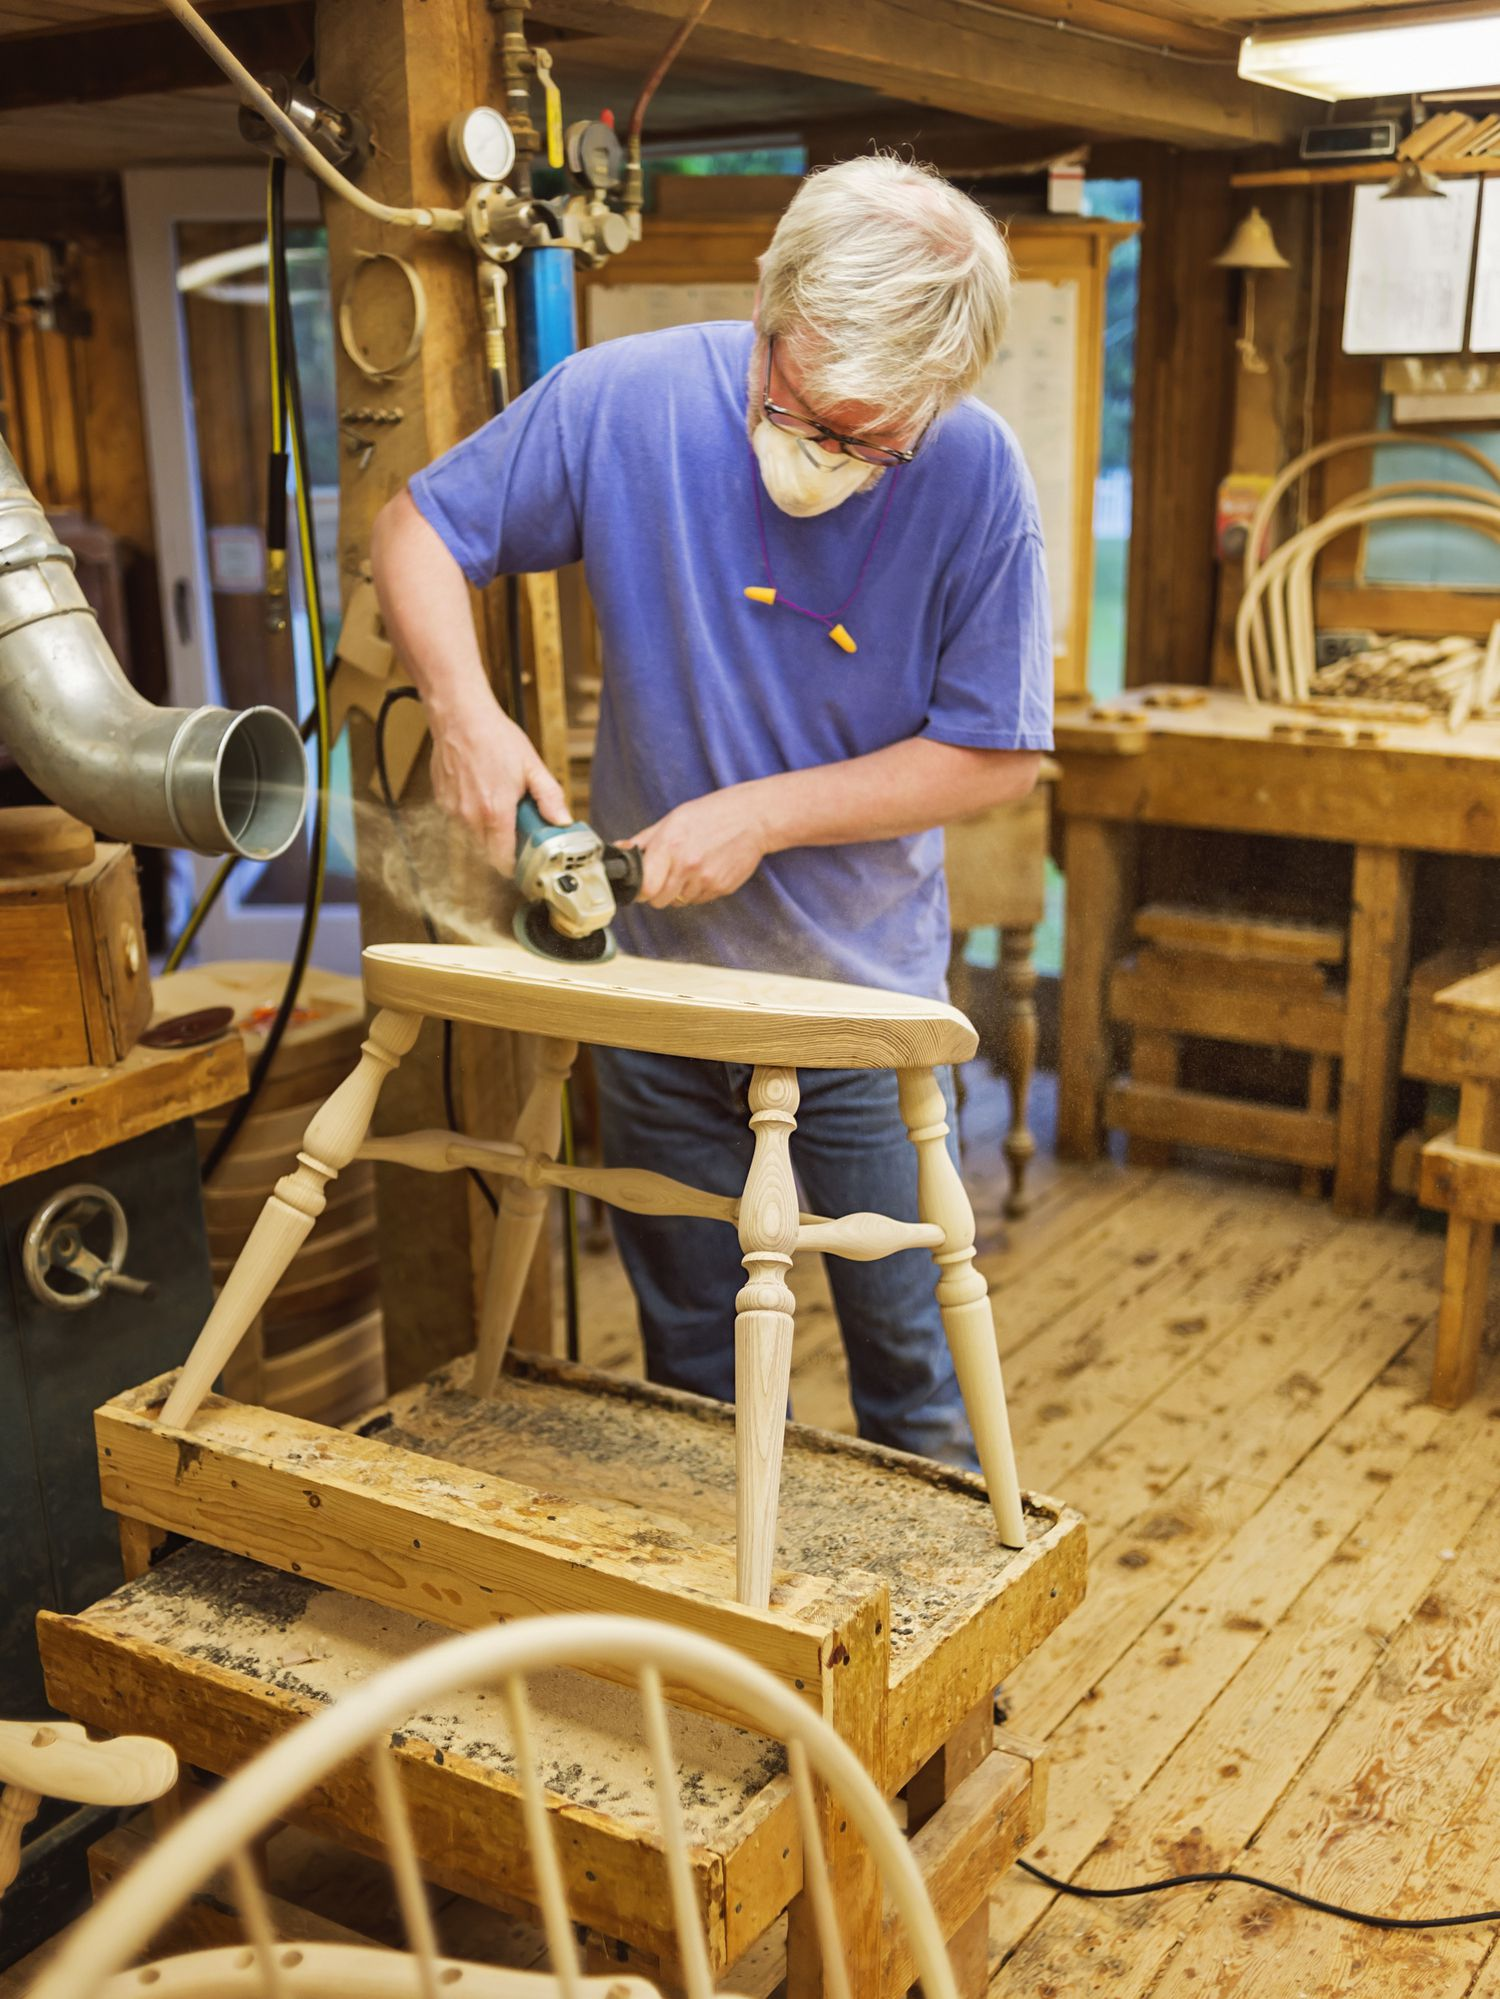 What to Know About Starting a Furniture Refinishing Business